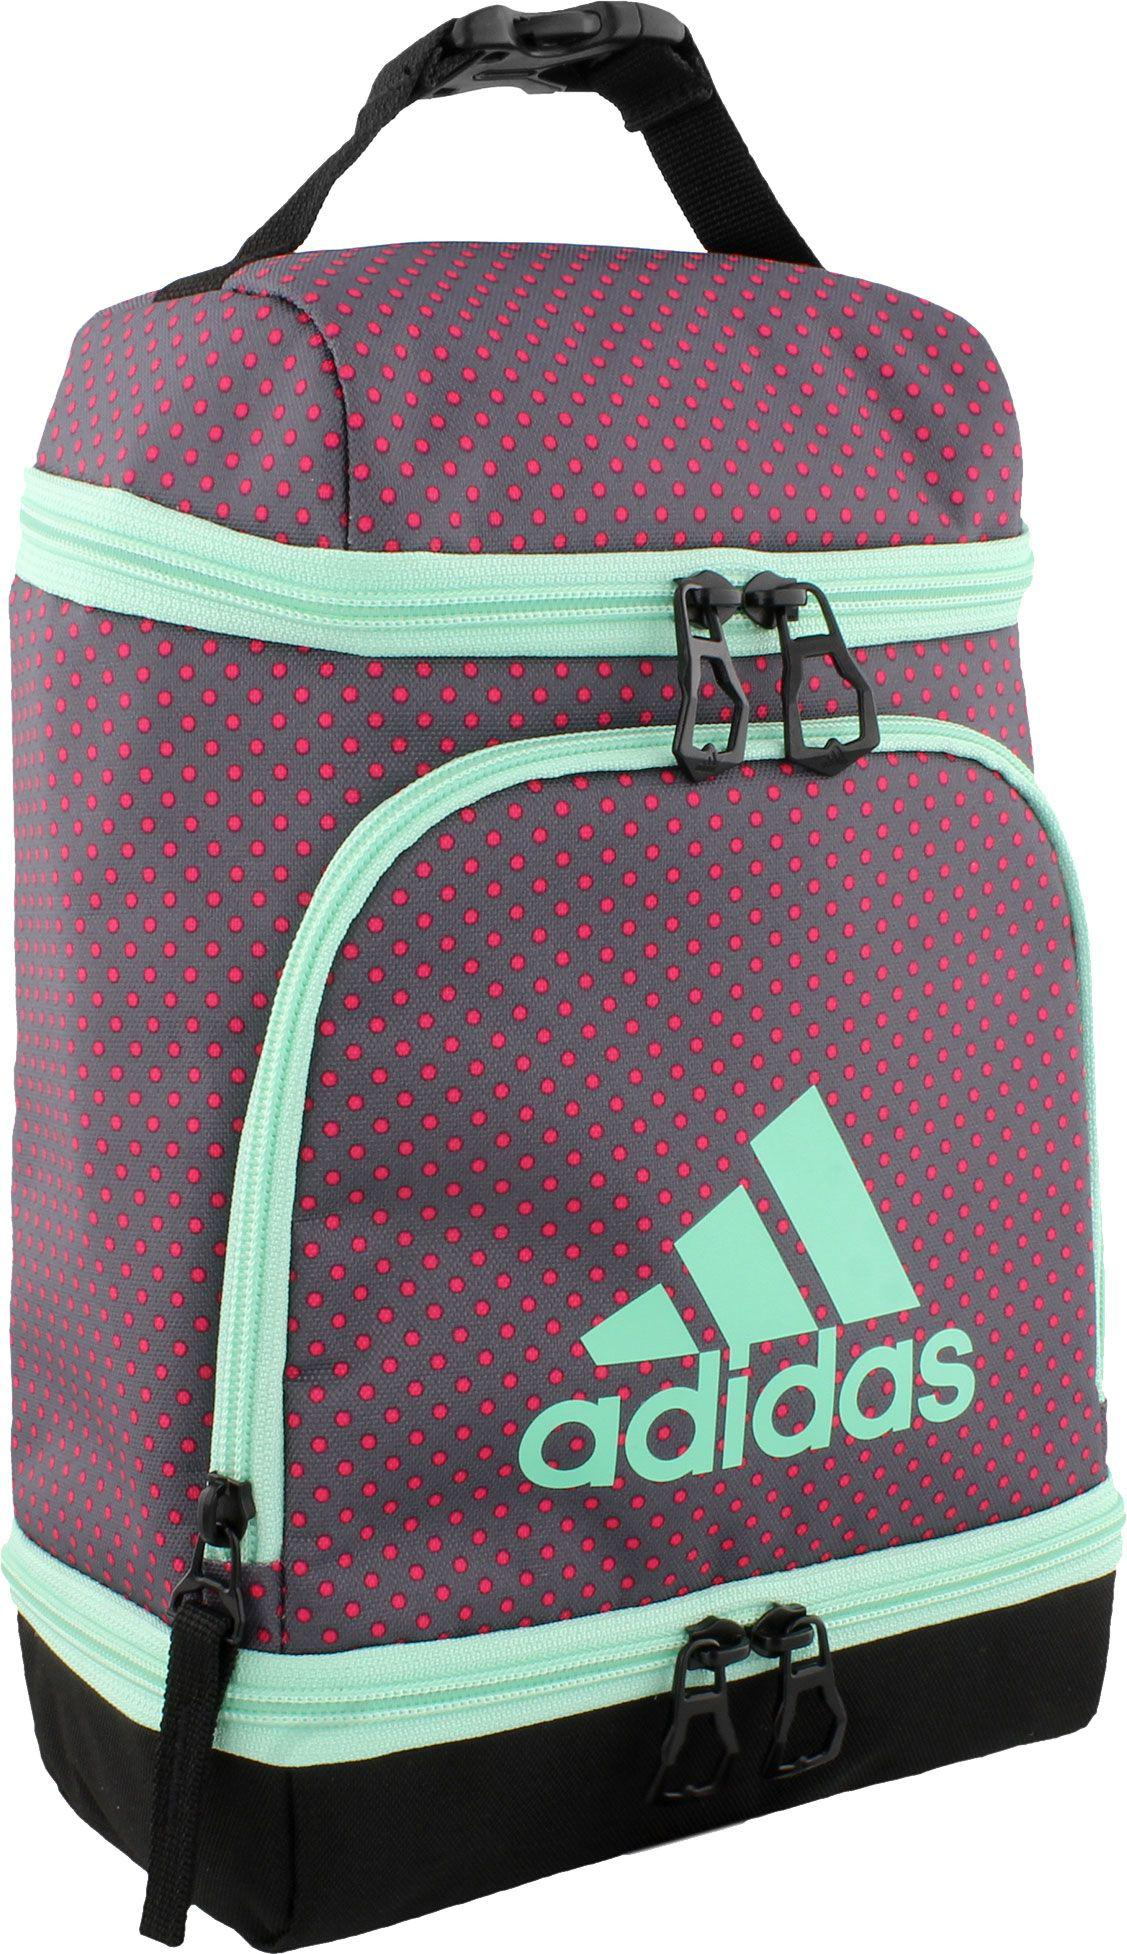 Adidas Pink Excel Lunch Bag Lyst View Fullscreen